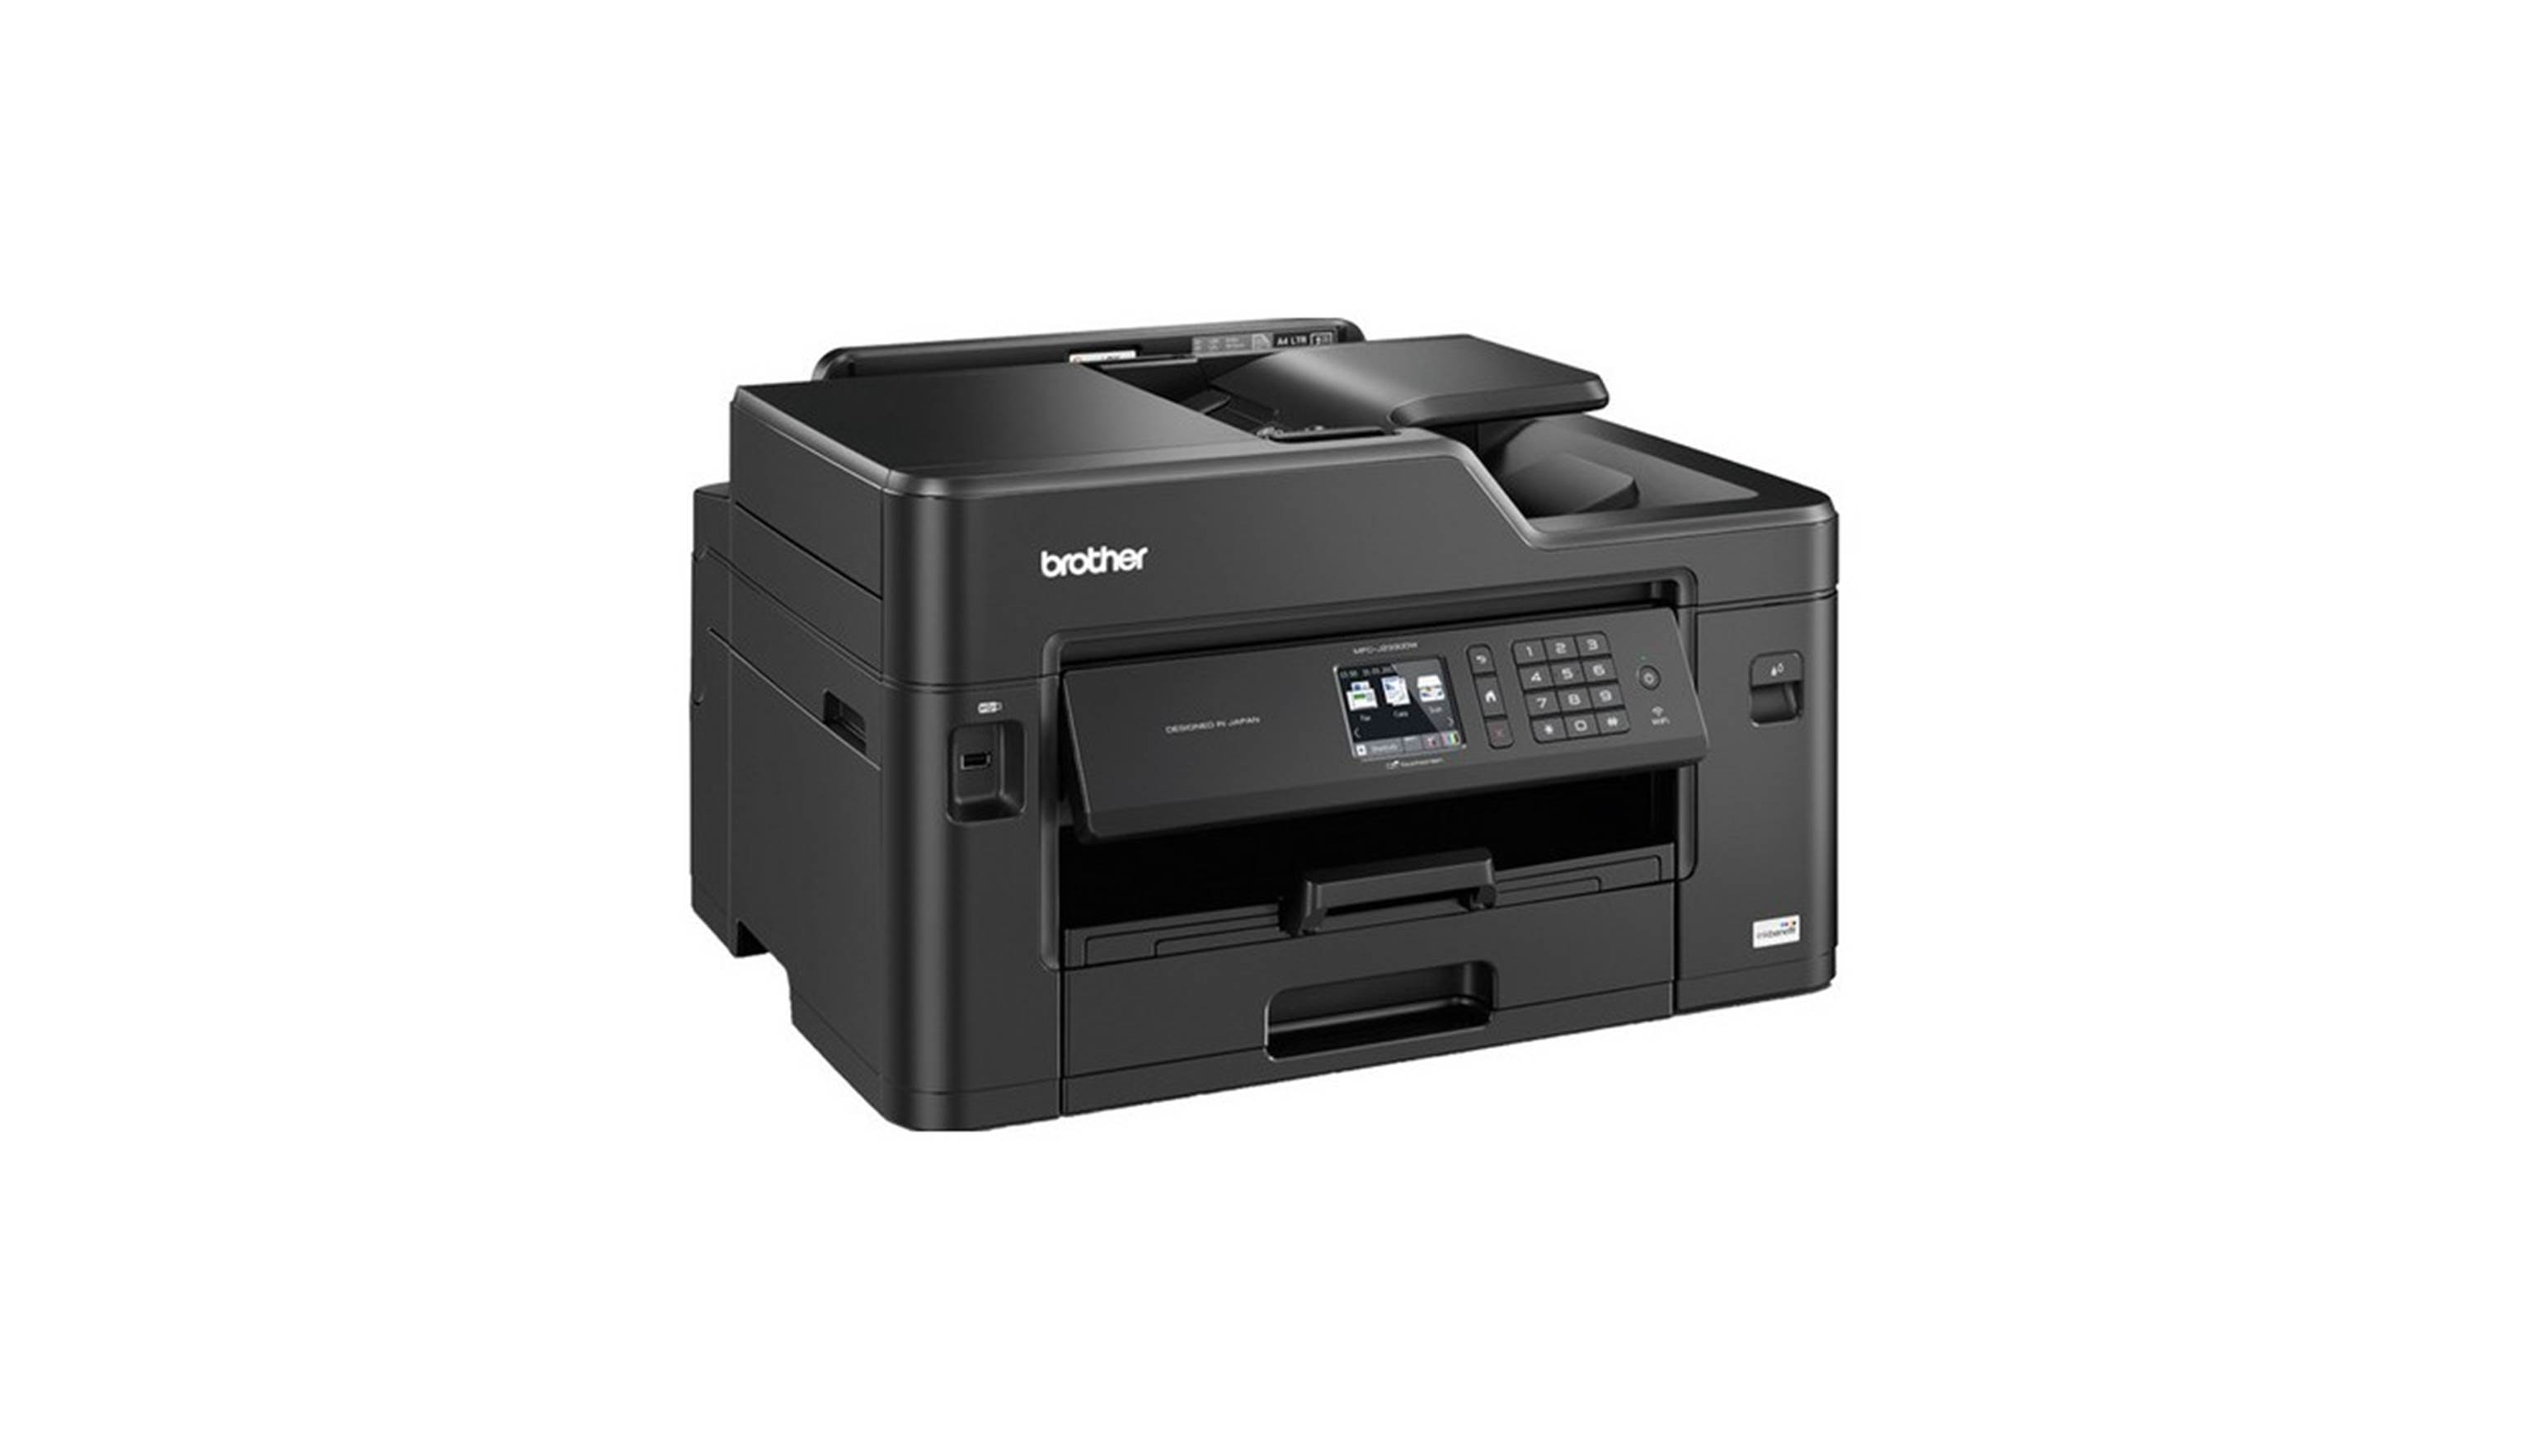 Brother Wireless Inkjet MFC-J2330DW All-in-one Printer- Side View